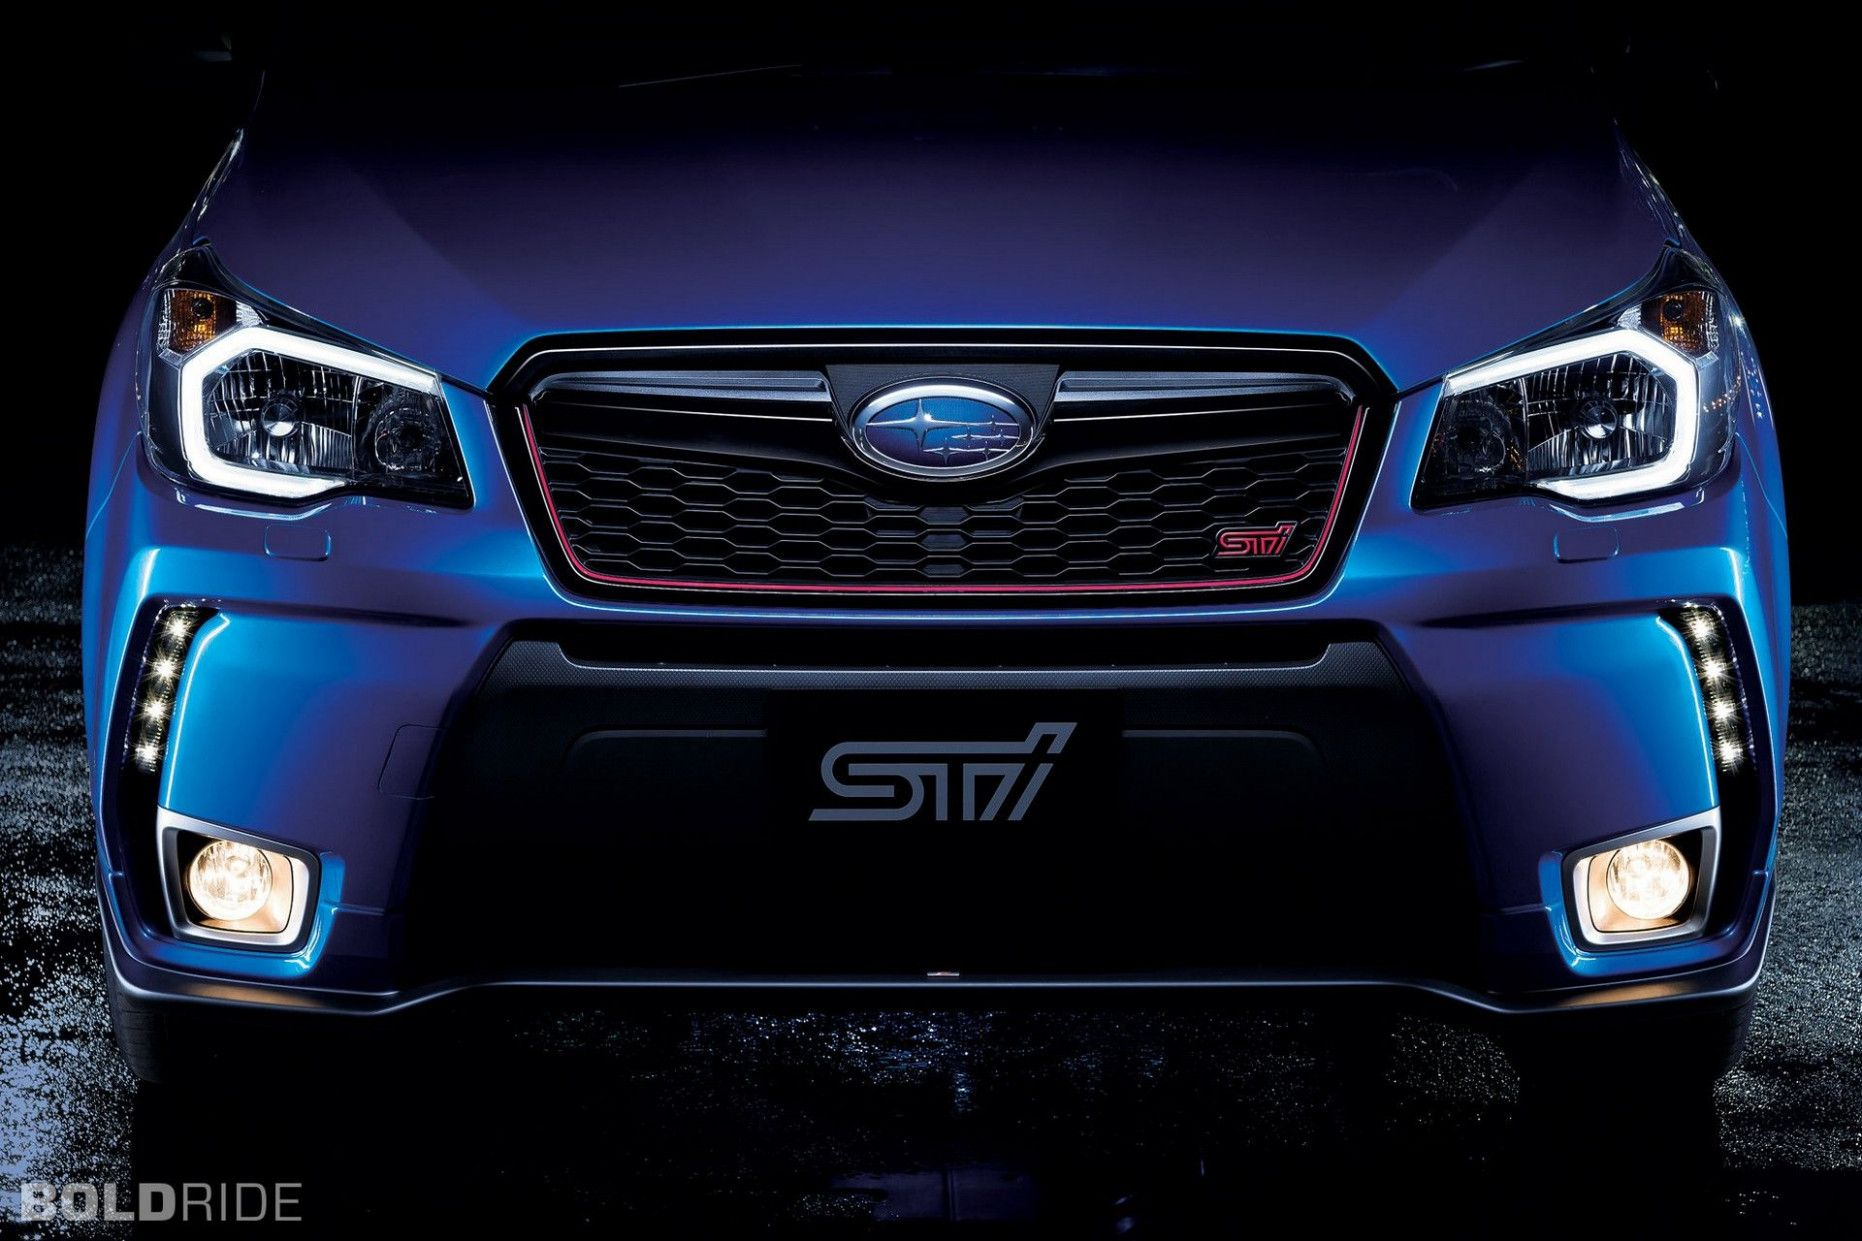 6 Picture 2020 Jdm Subaru Forester In 2020 Subaru Forester Sti Subaru Forester Xt Jdm Subaru